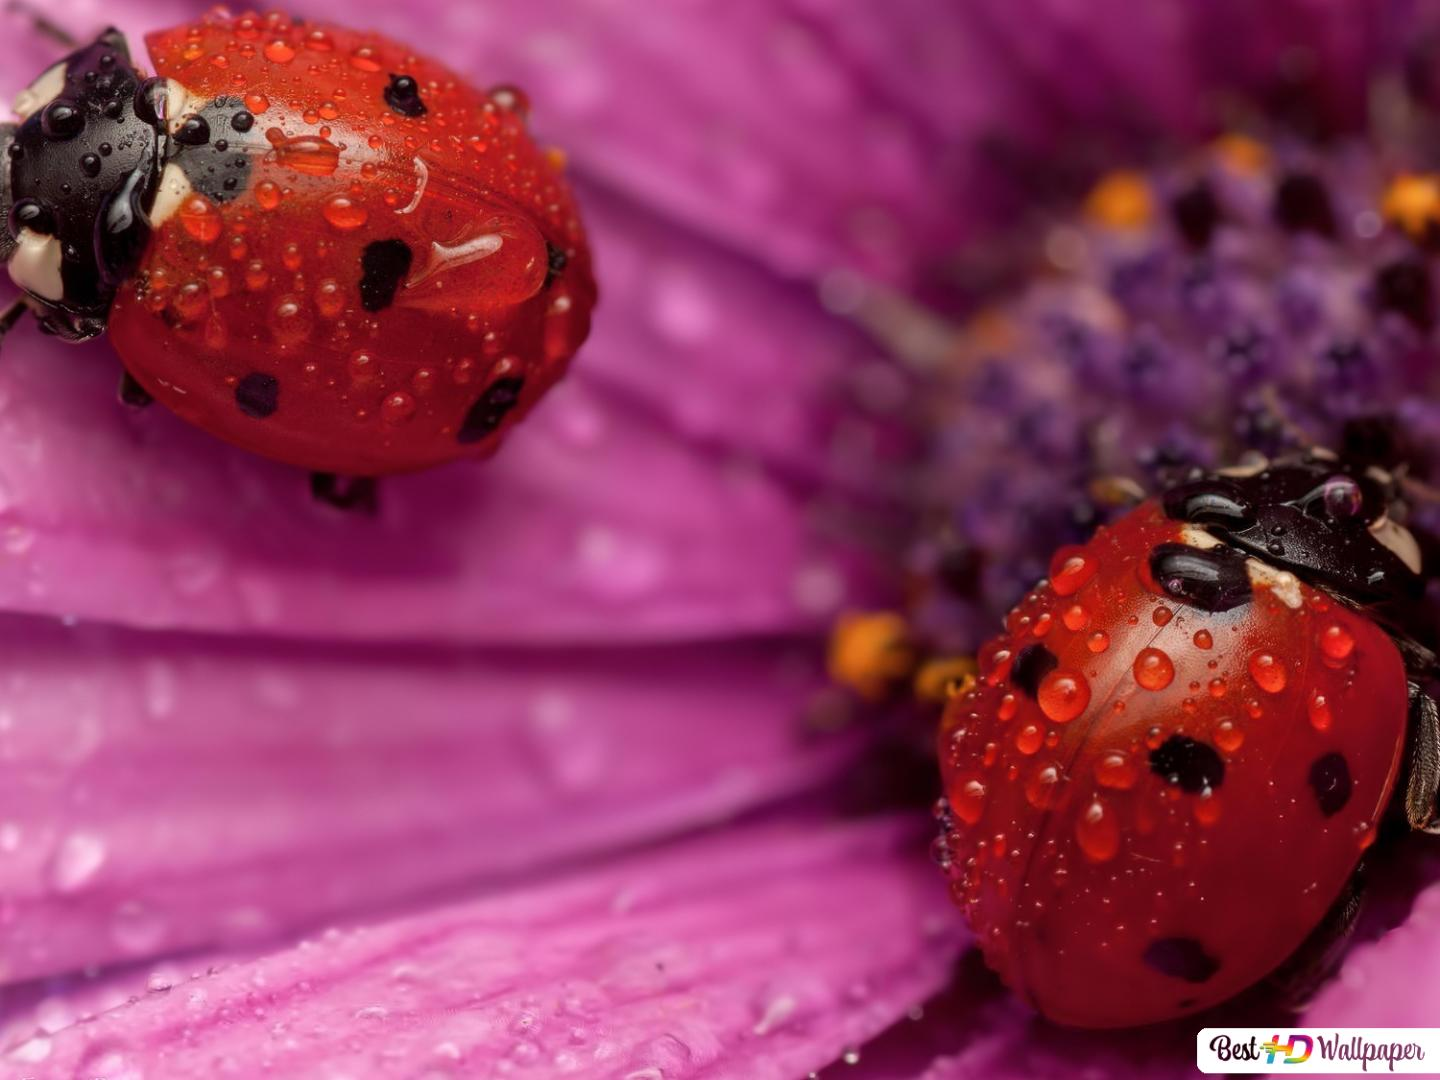 ladybug in the flower hd wallpaper download